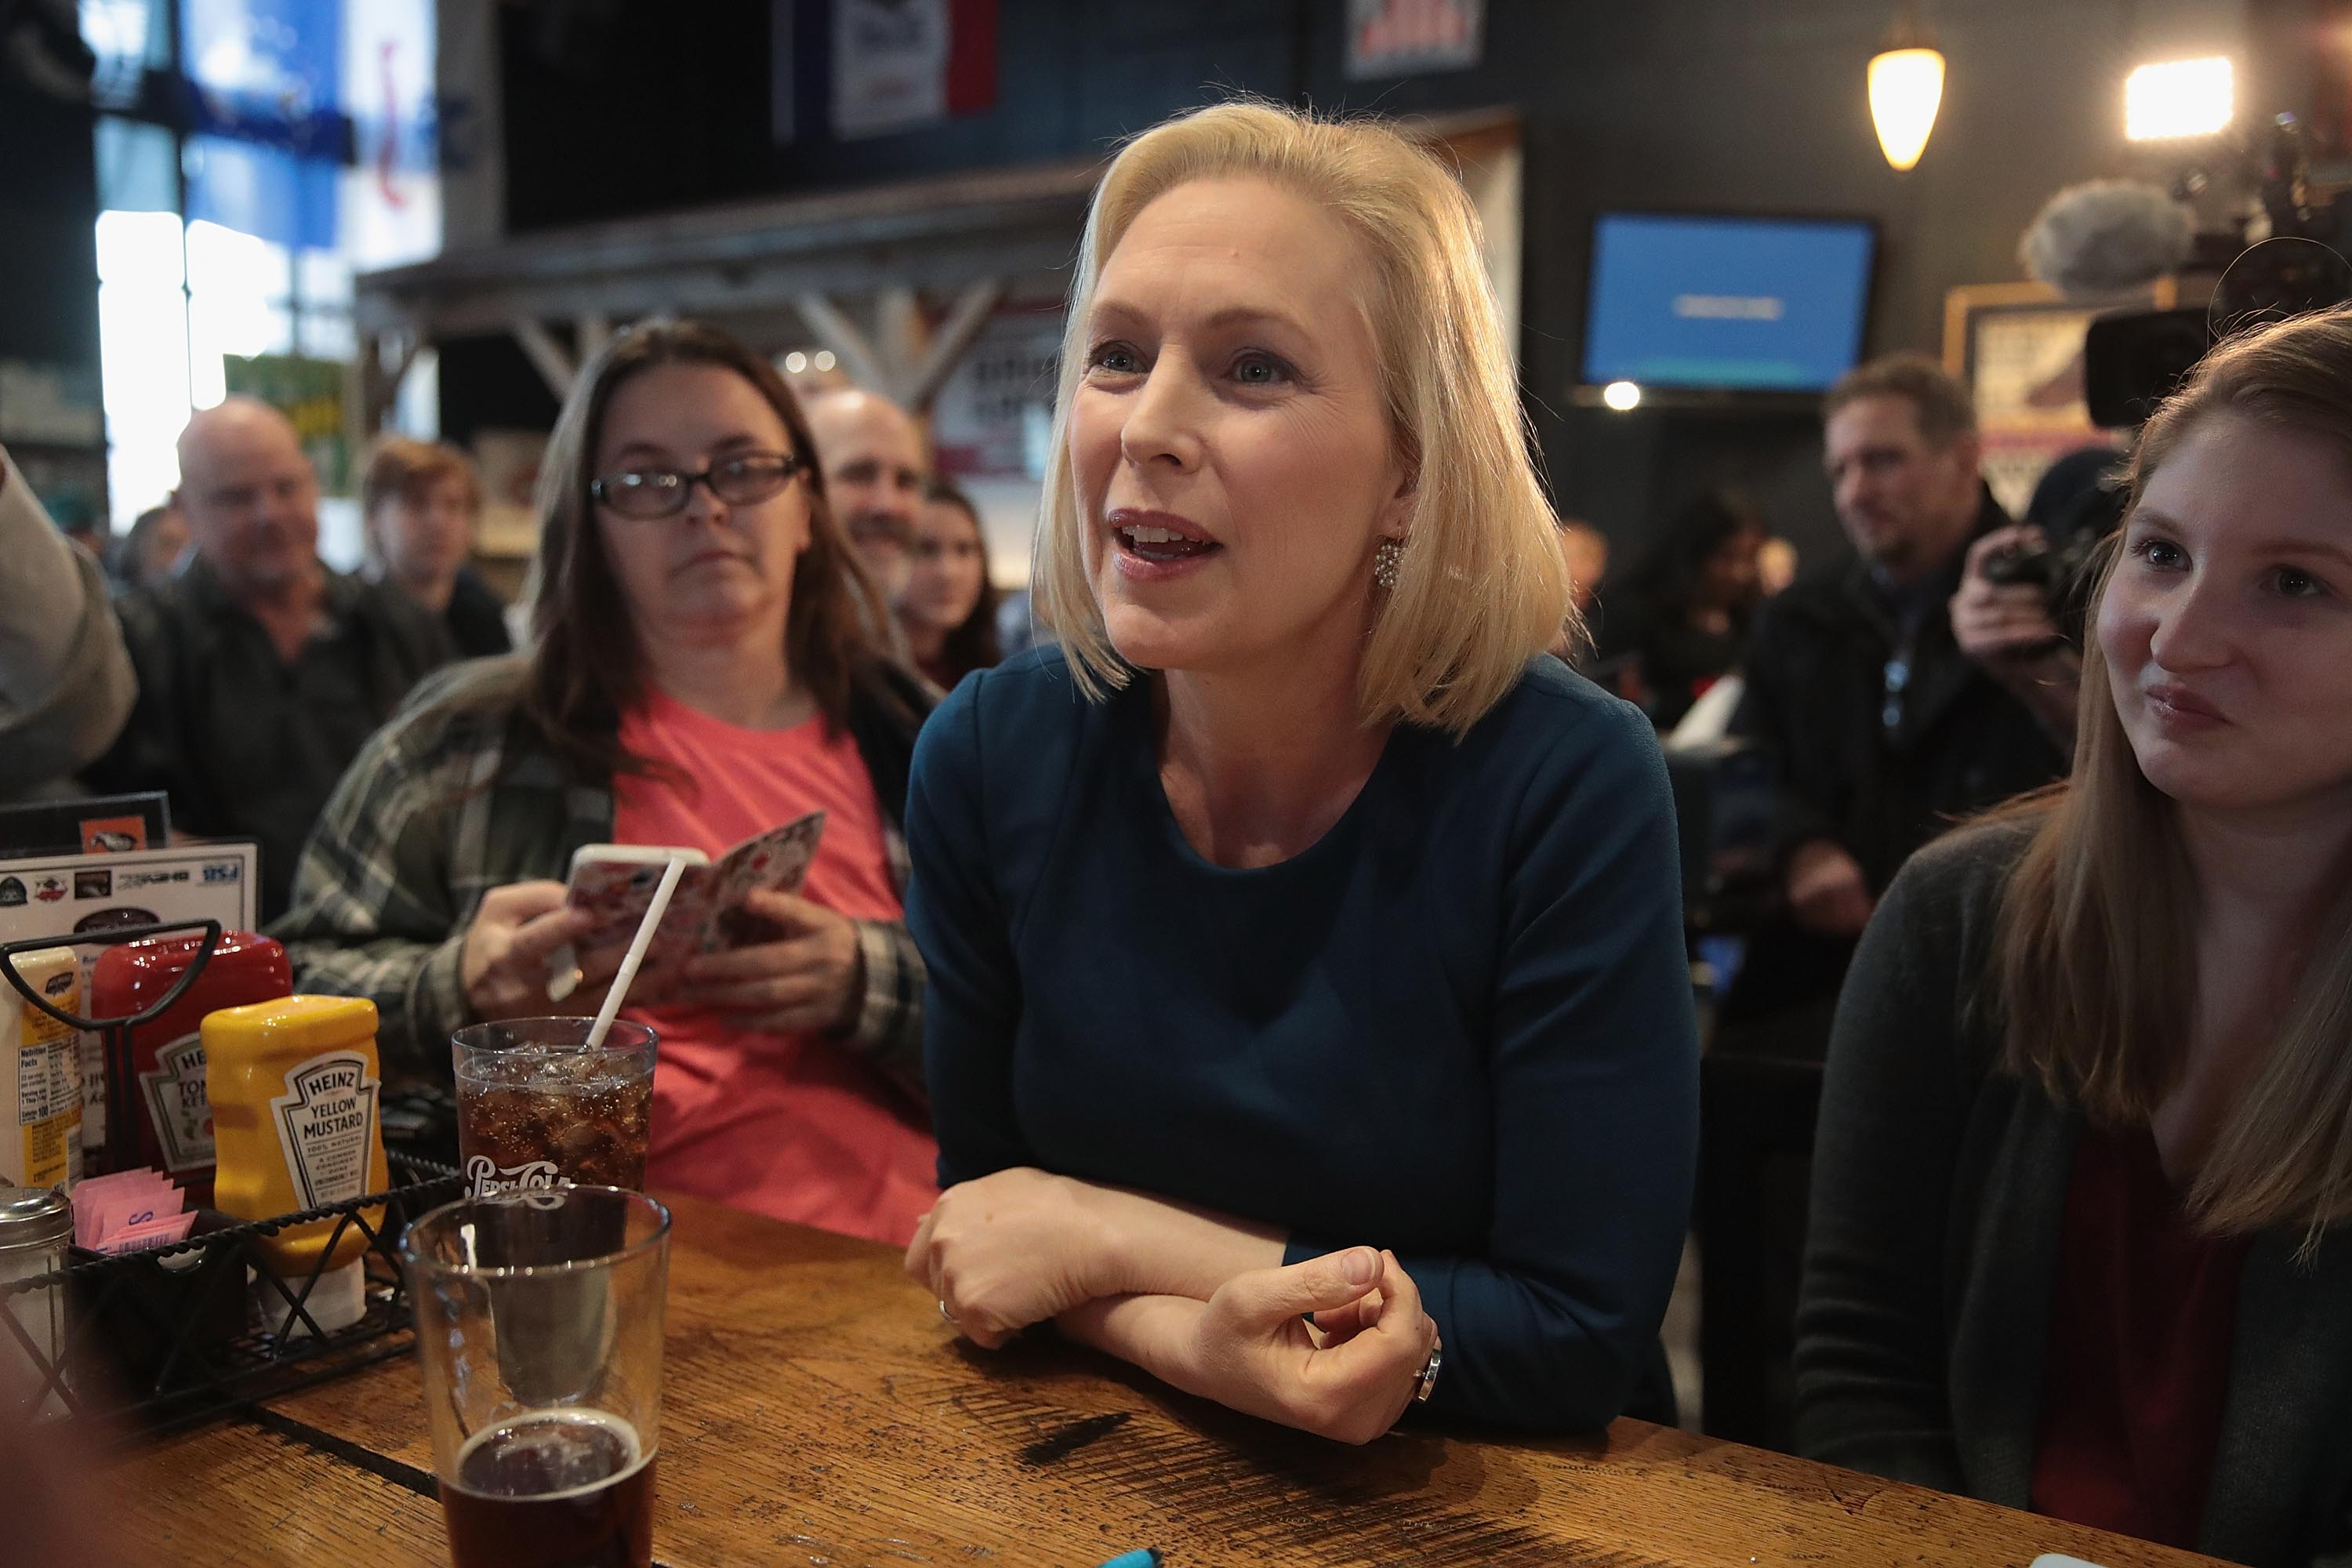 Senator Kirsten Gillibrand speaks to guests during a campaign stop at the Chrome Horse Saloon in Cedar Rapids, Iowa. (Scott Olson/Getty Images)